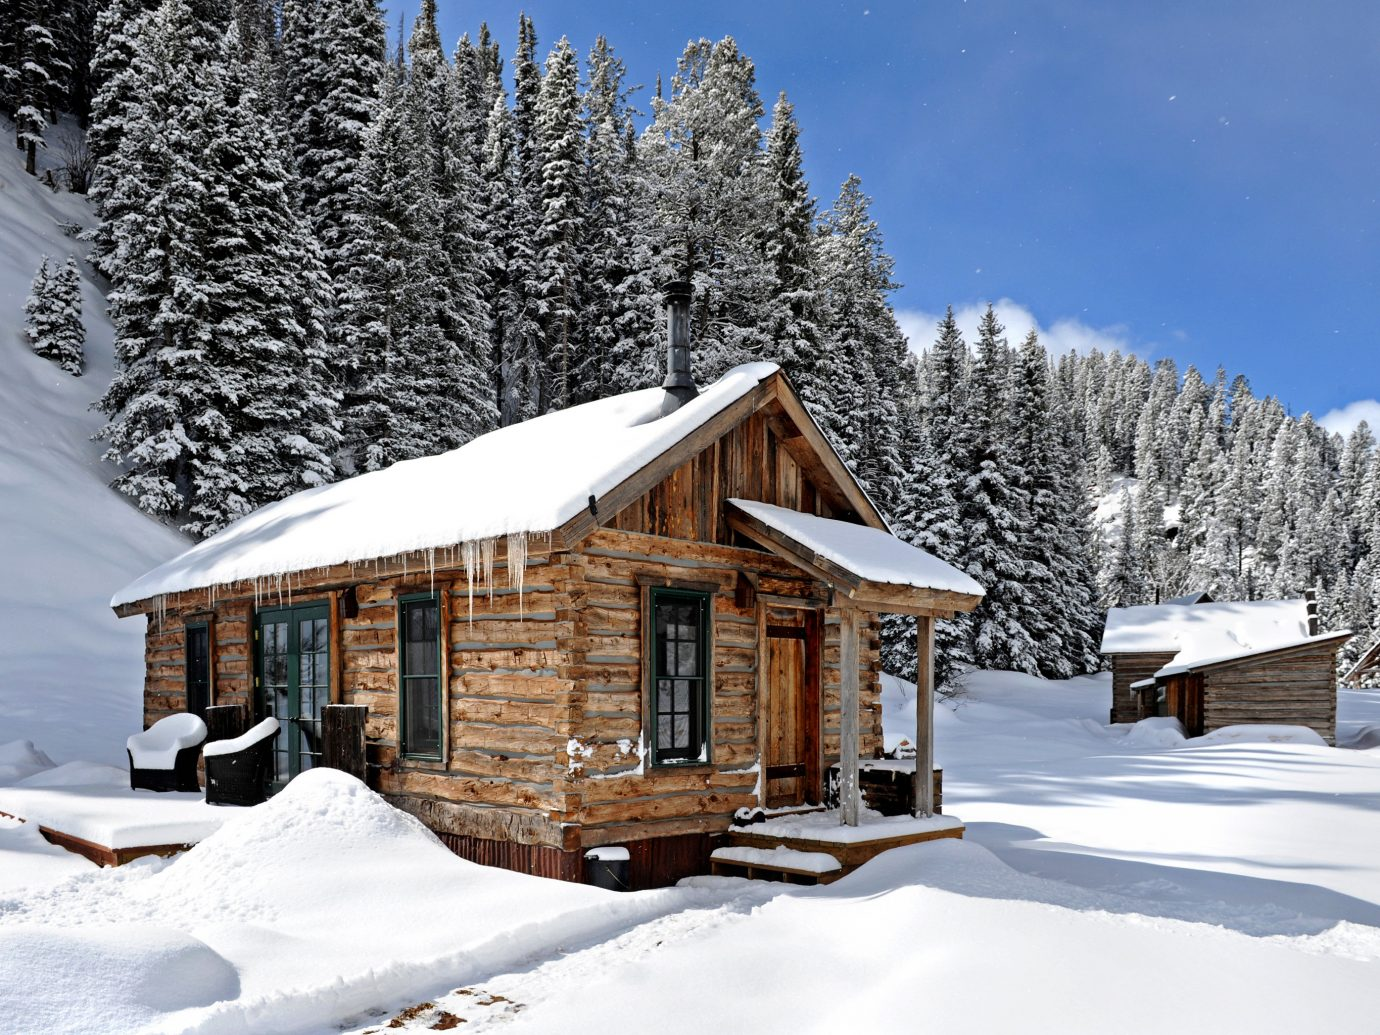 Adventure Glamping Grounds Hotels Rustic snow tree outdoor skiing Winter log cabin weather Nature hut house season sugar house home Resort cottage mountain range jumping slope surrounded